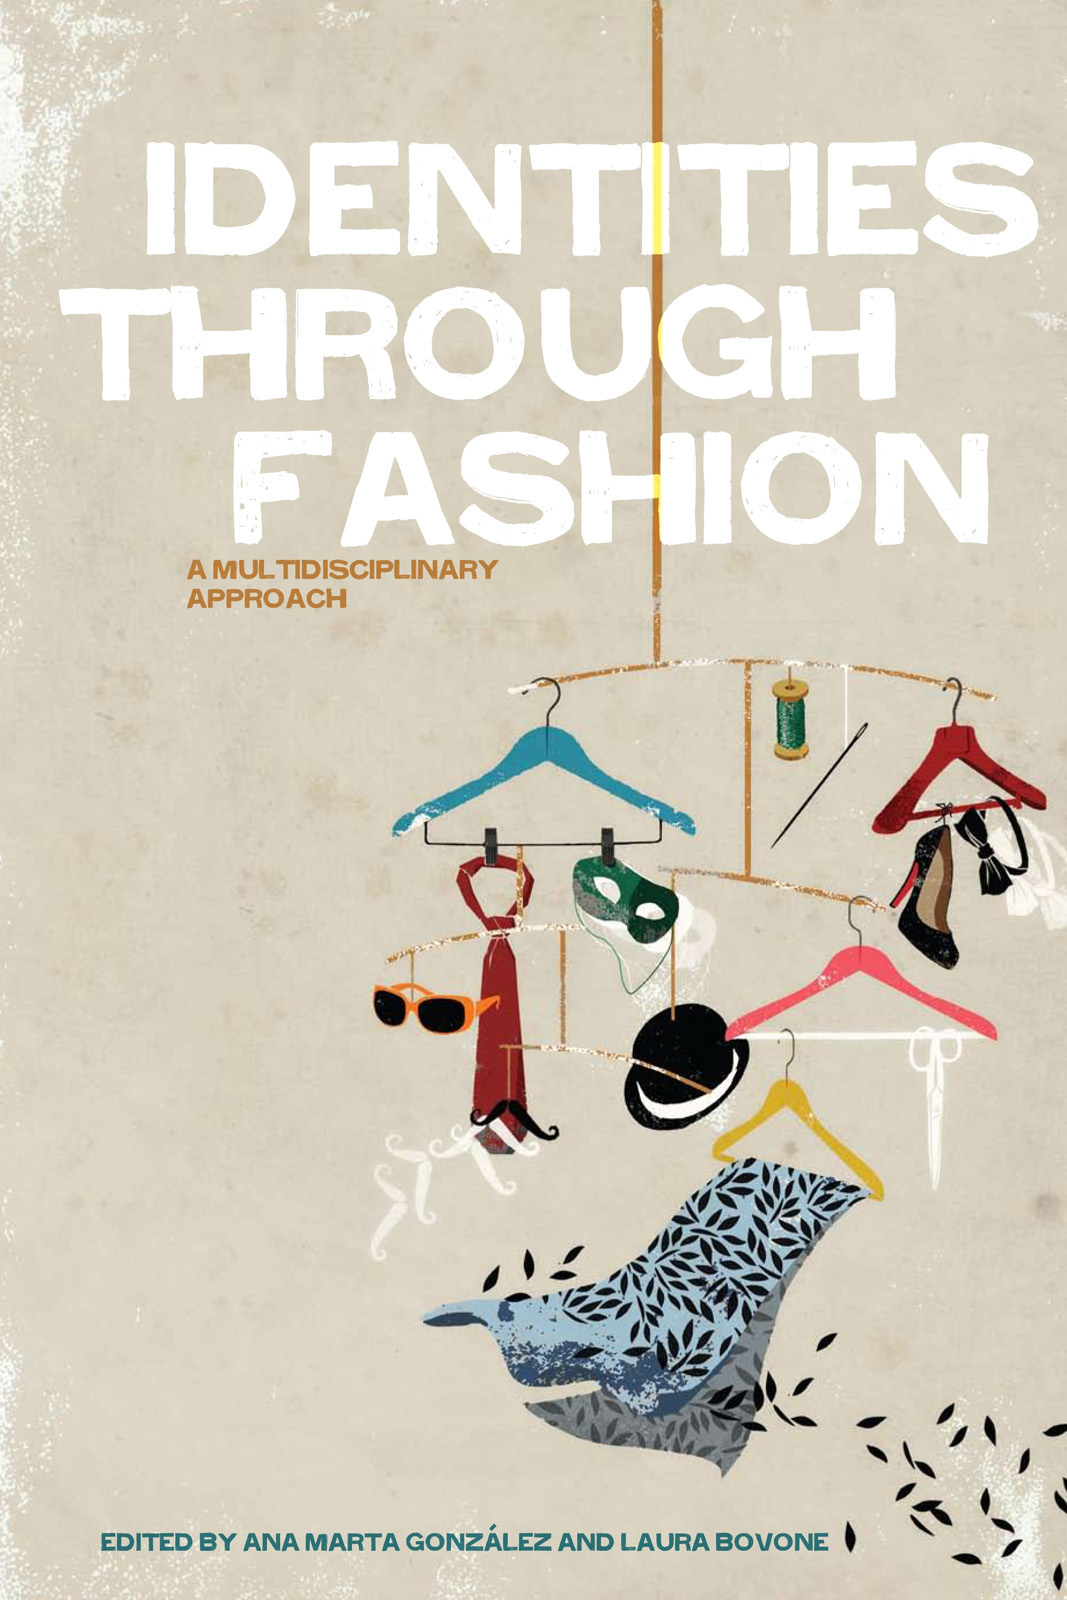 Identities Through Fashion, eBook cover image